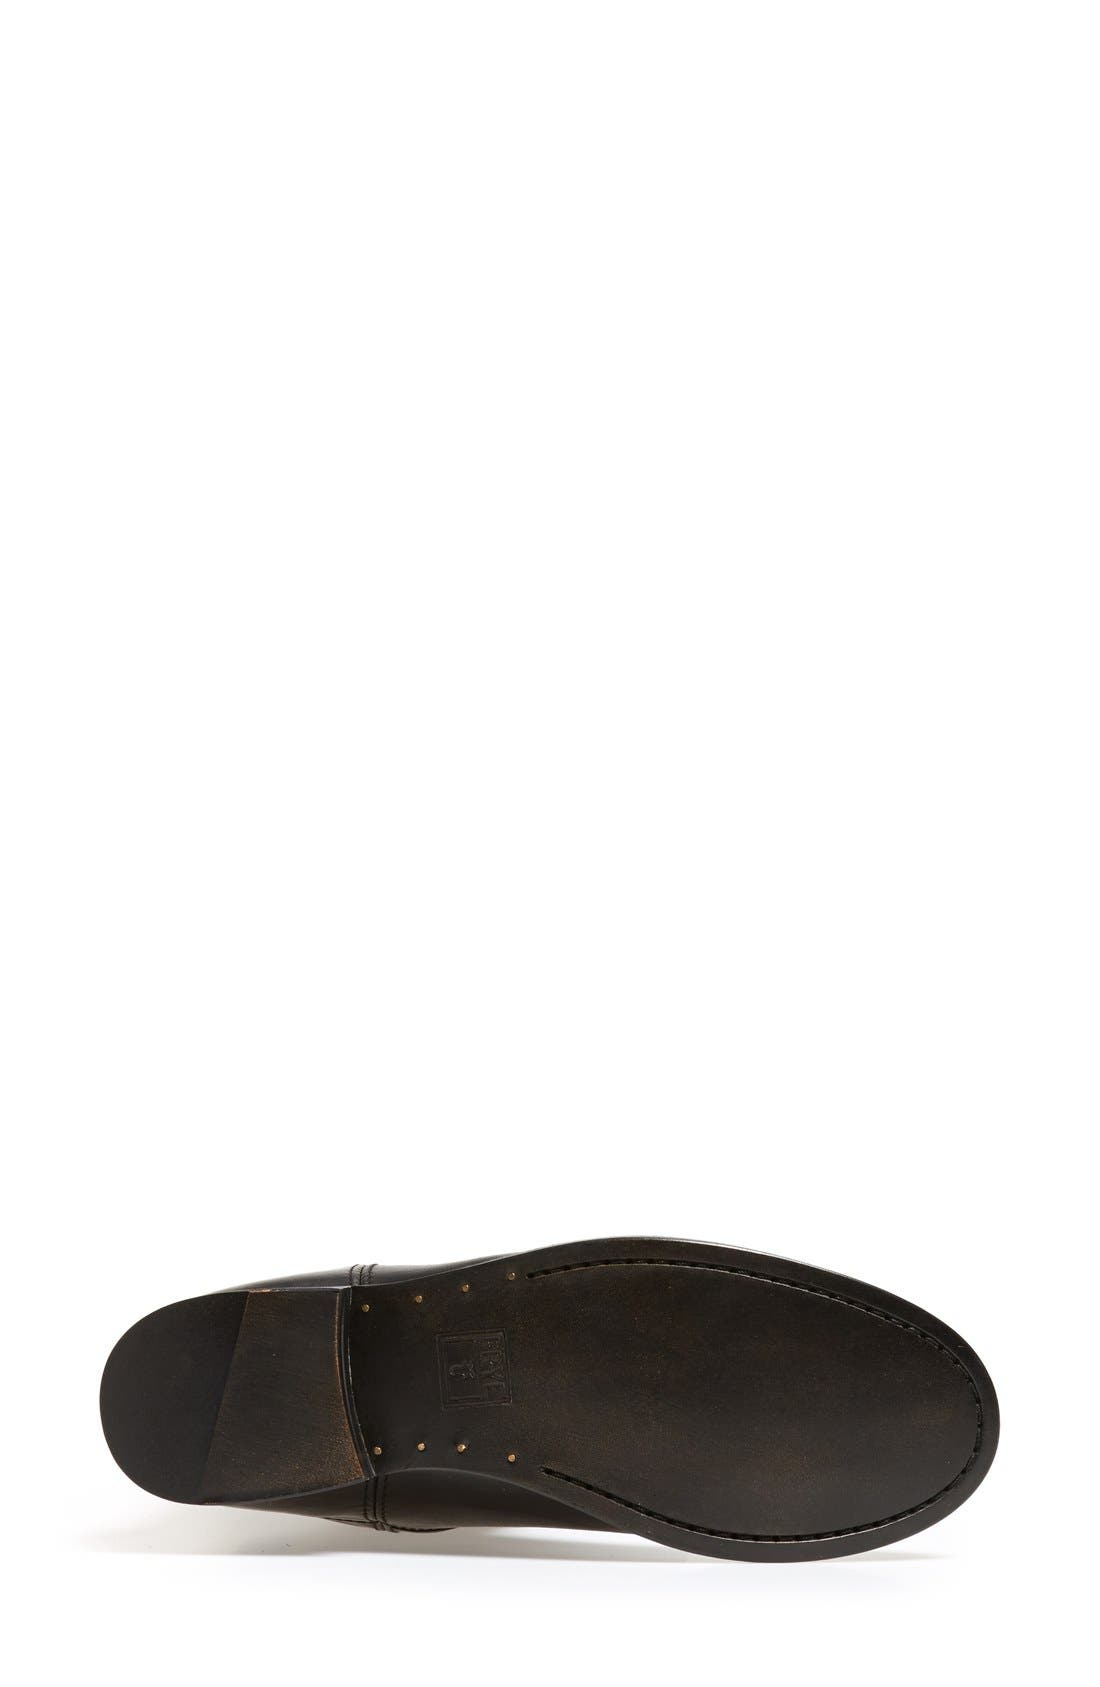 'Melissa Button' Leather Riding Boot,                             Alternate thumbnail 71, color,